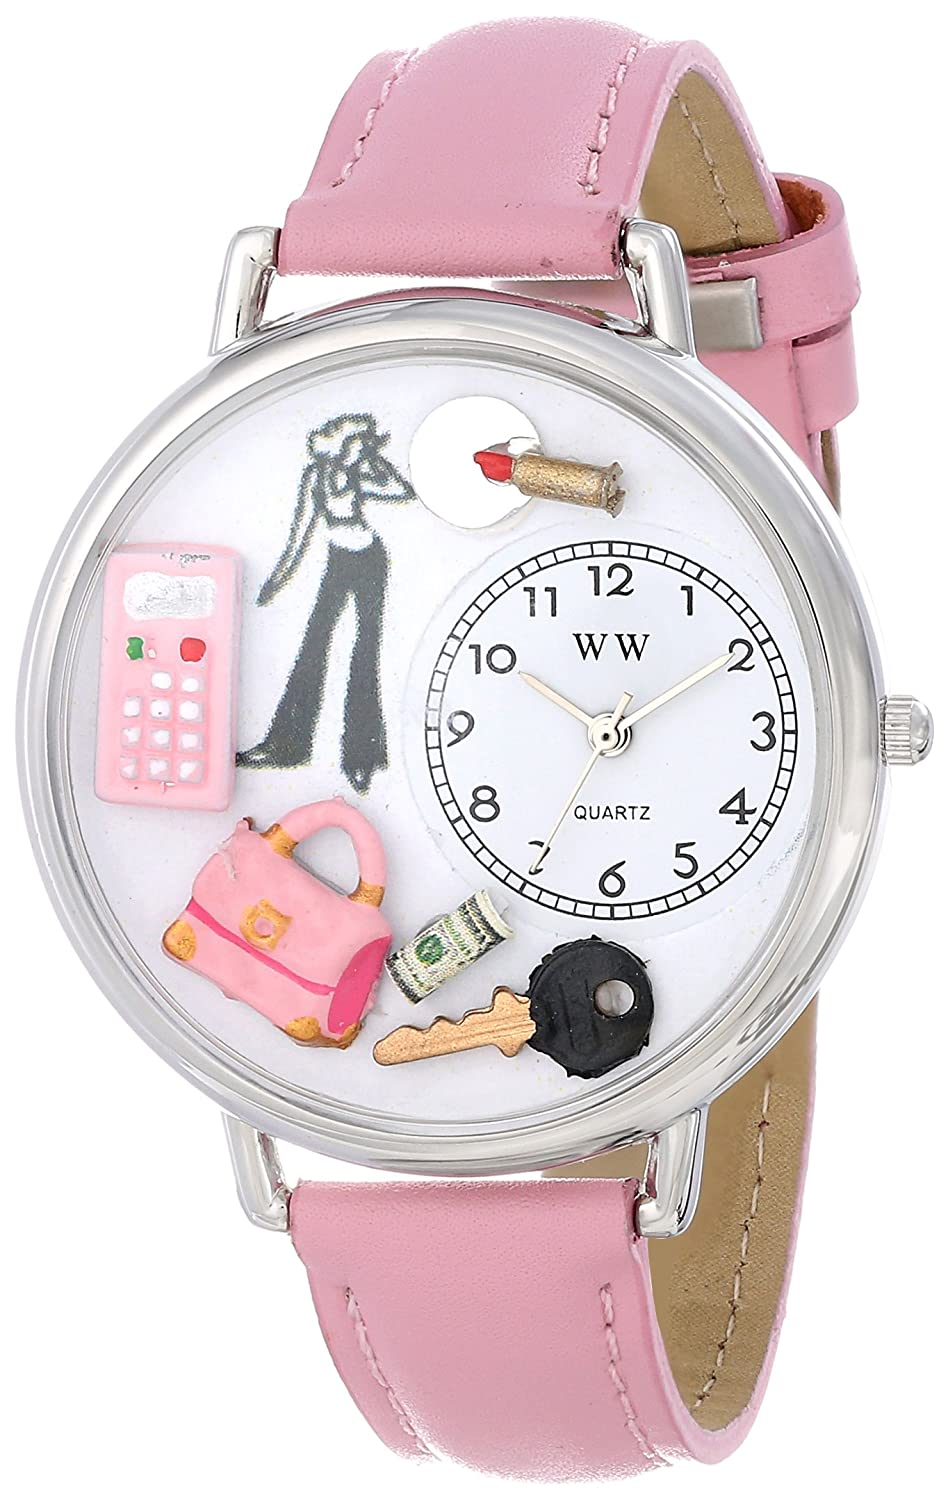 Teen Girl Watch in Silver (Large): Whimsical Watches: Amazon.ca ...